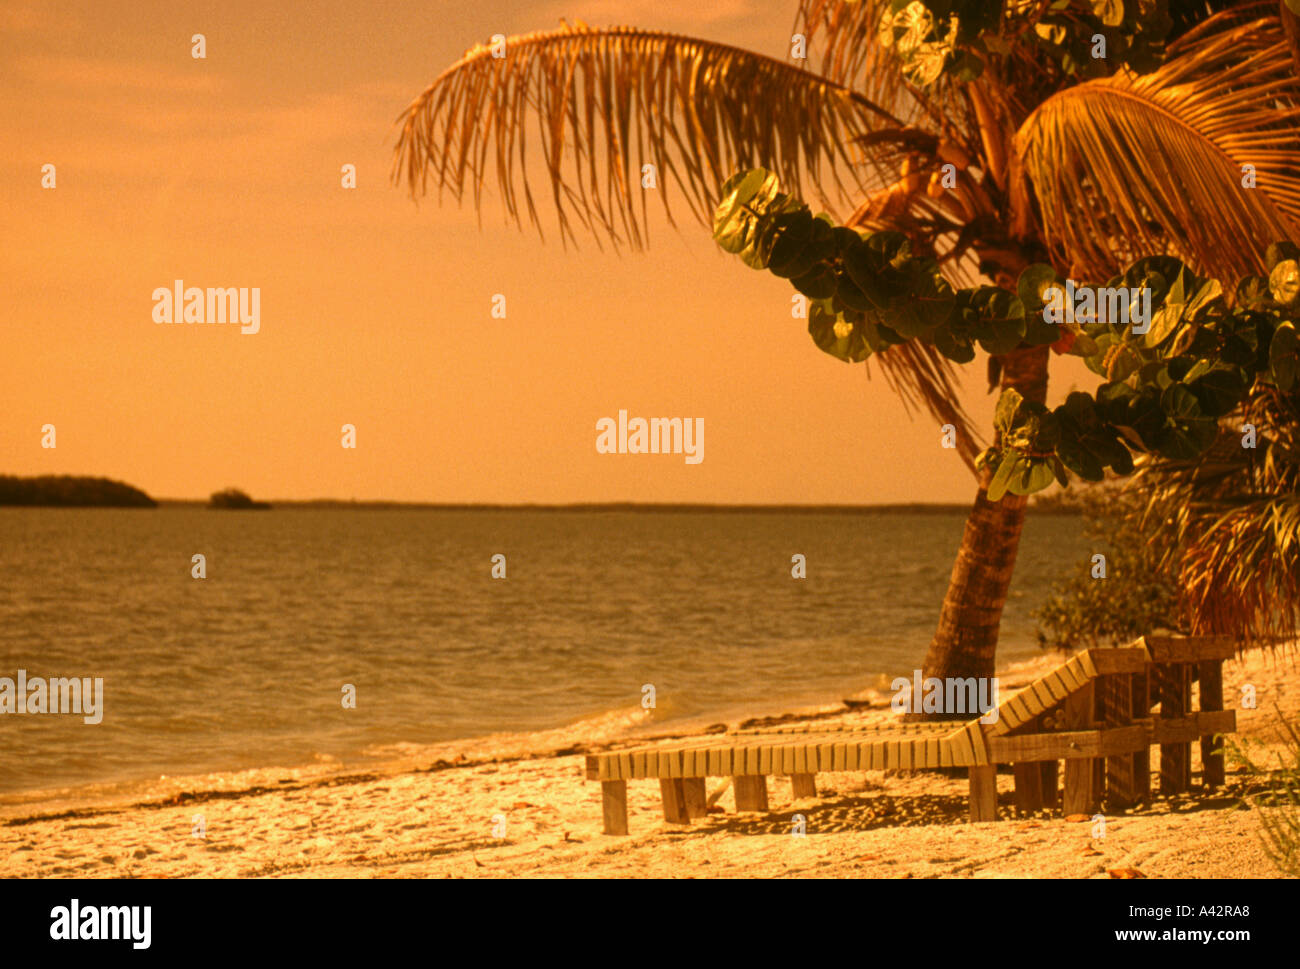 Beach Scenic - Stock Image